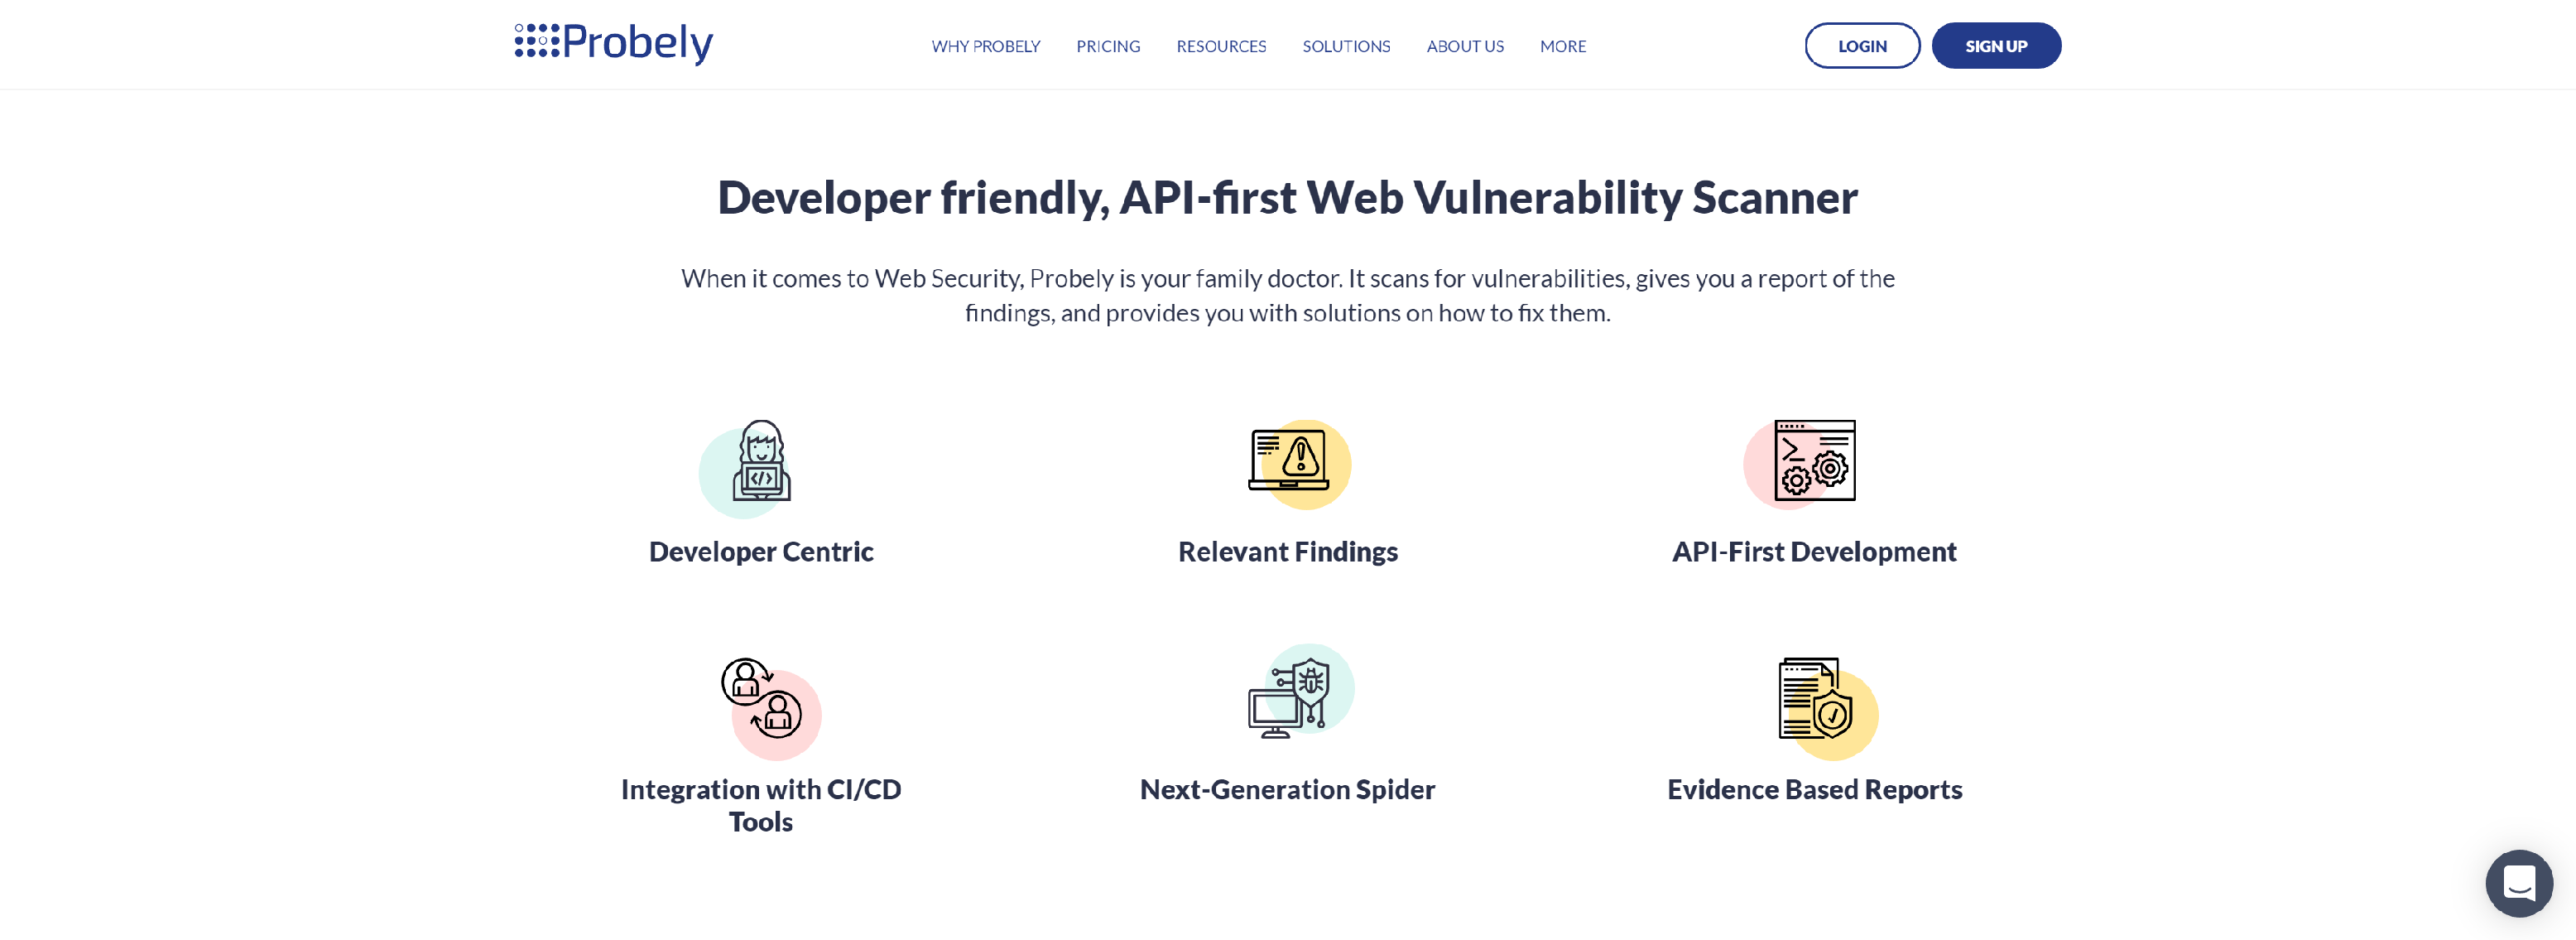 Top 7 Best Web Application Security Vulnerability Scanners